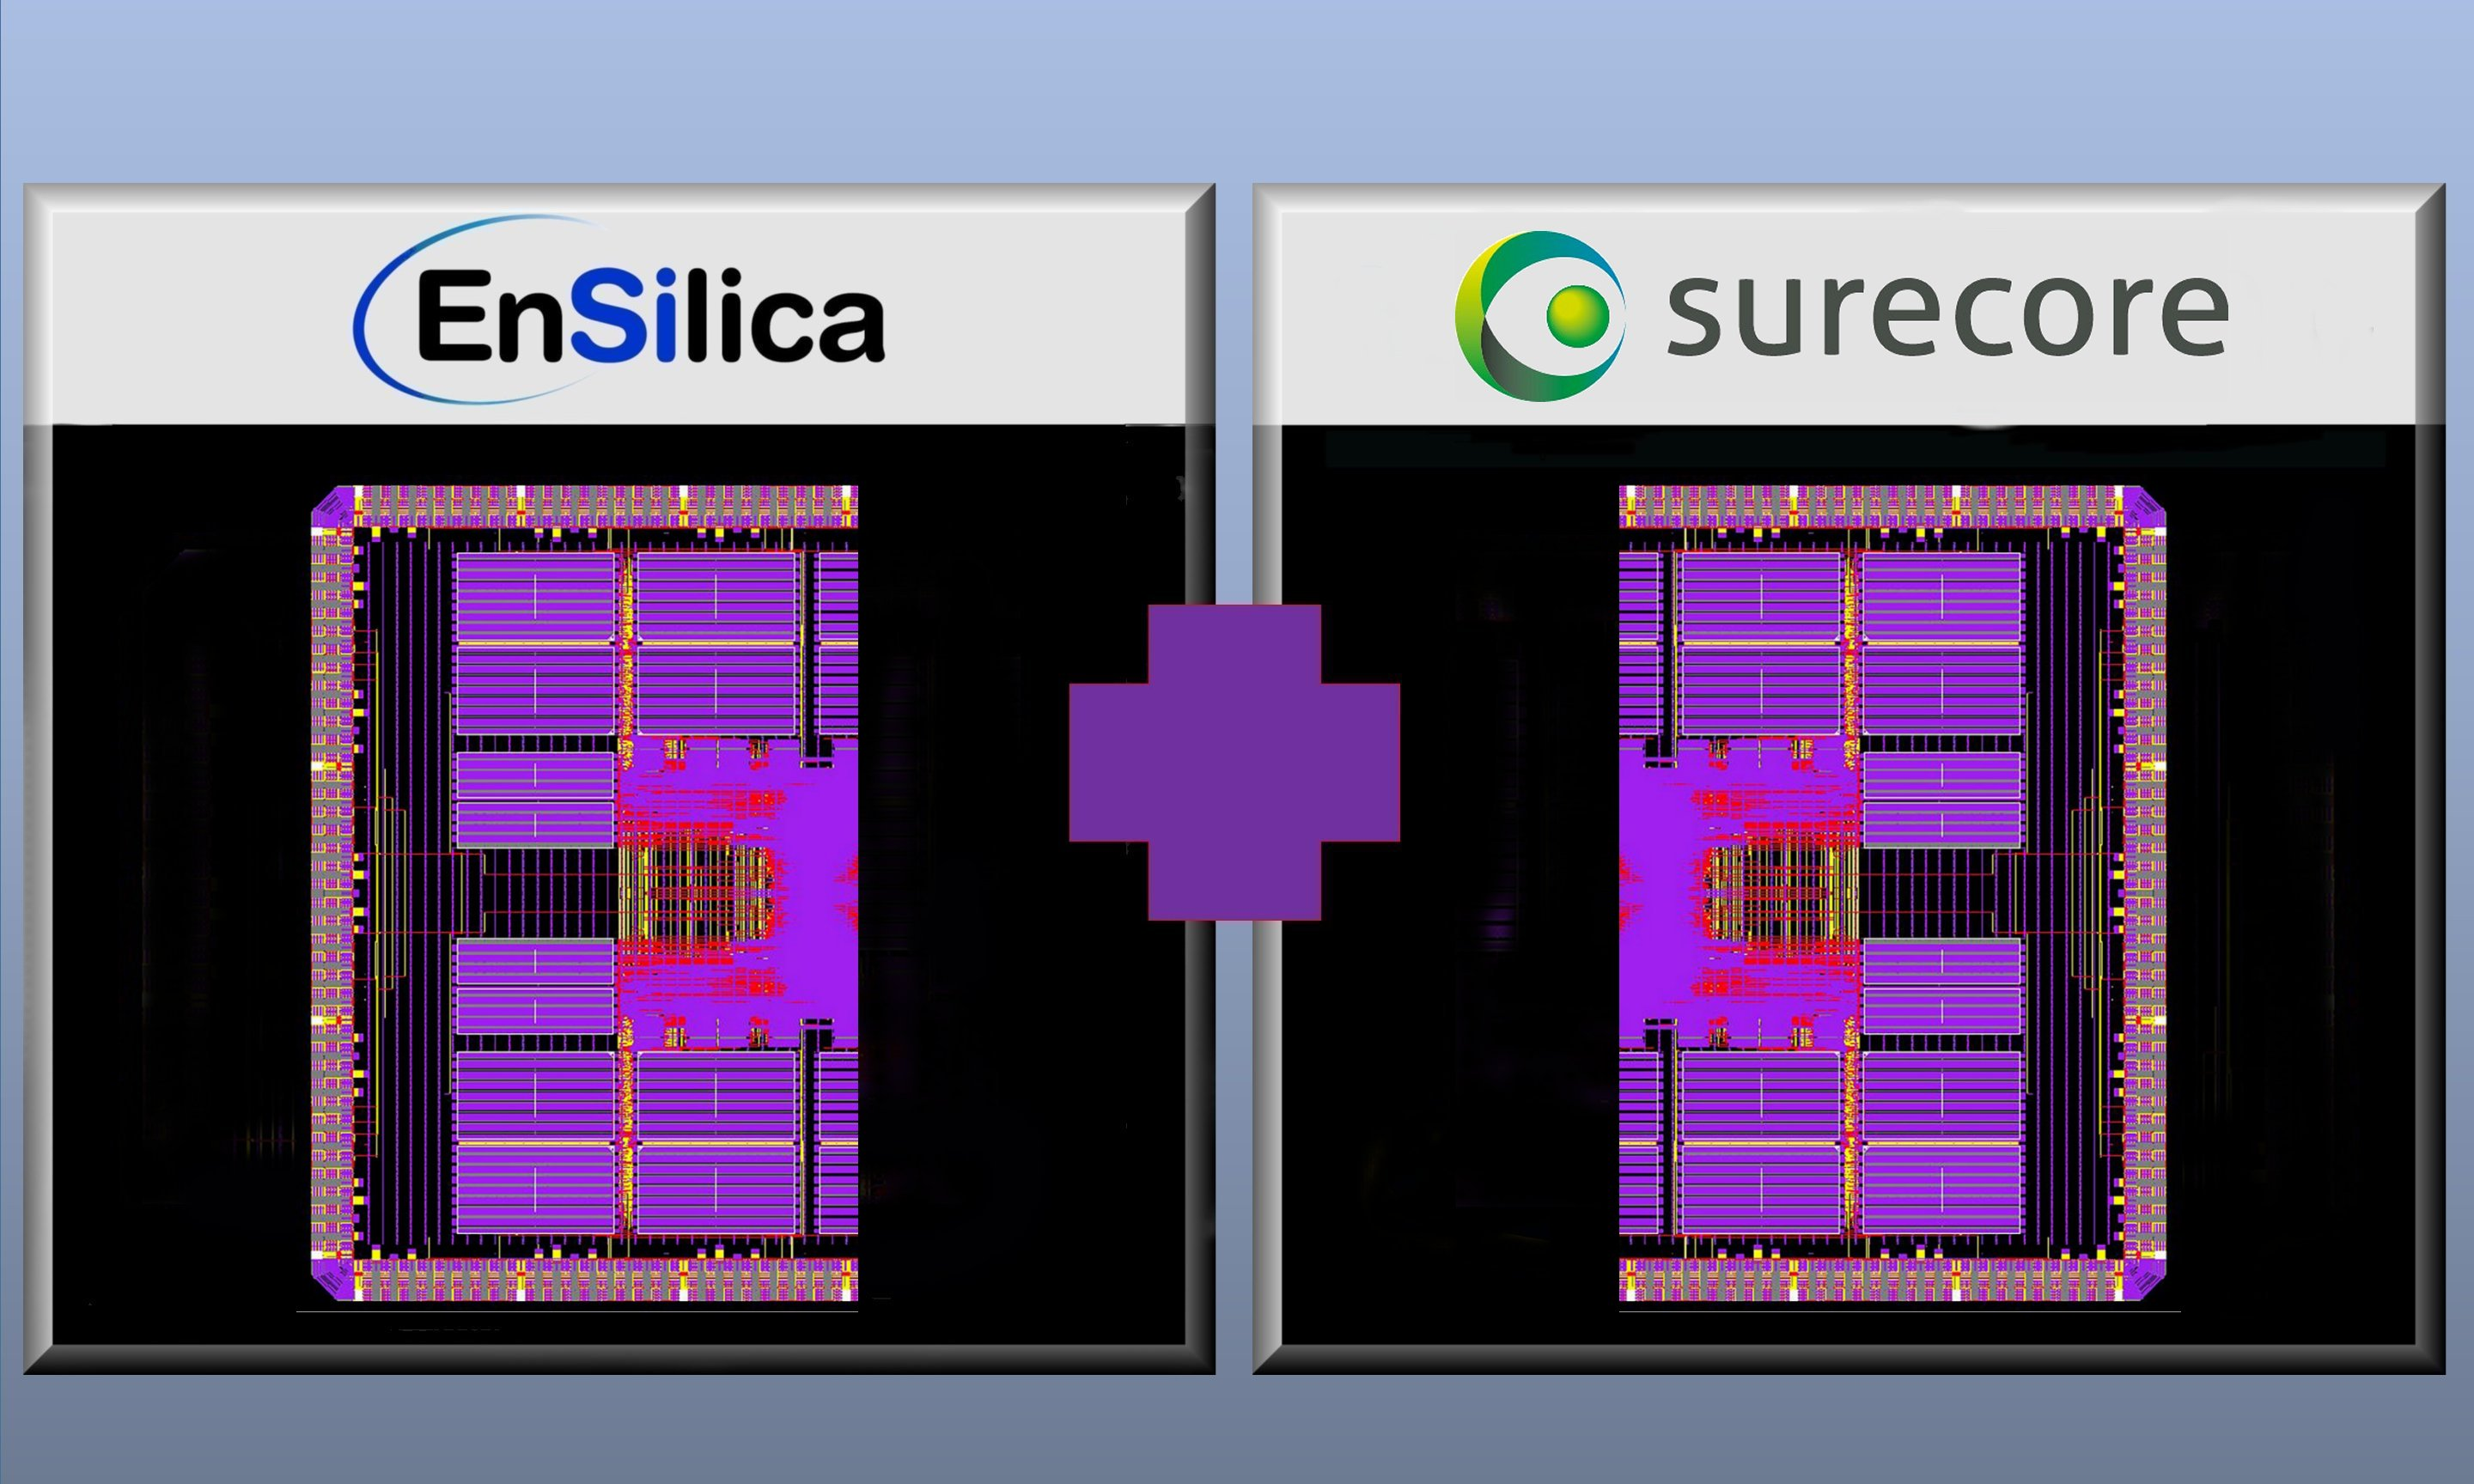 EnSilica Develops sureCore's New, Ultra-Low Power IoT Reference